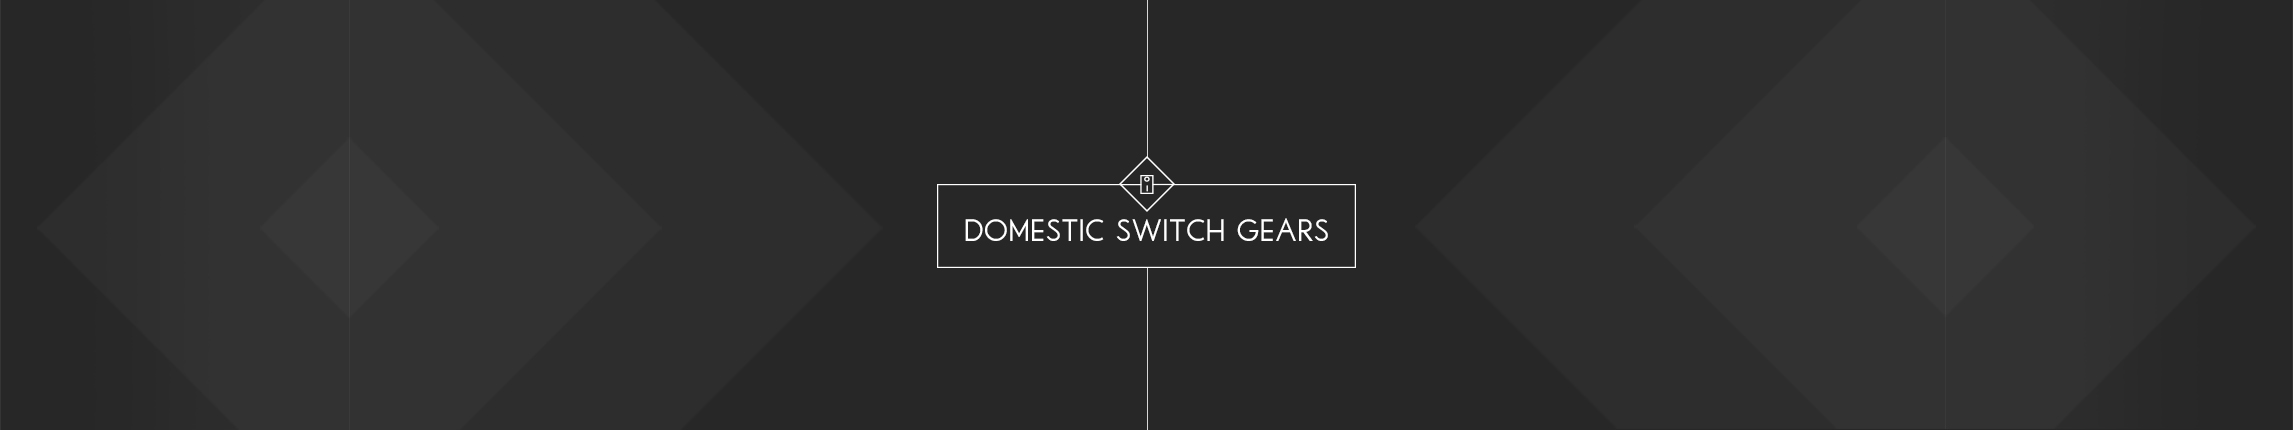 V-Guard Domestic Switch Gears